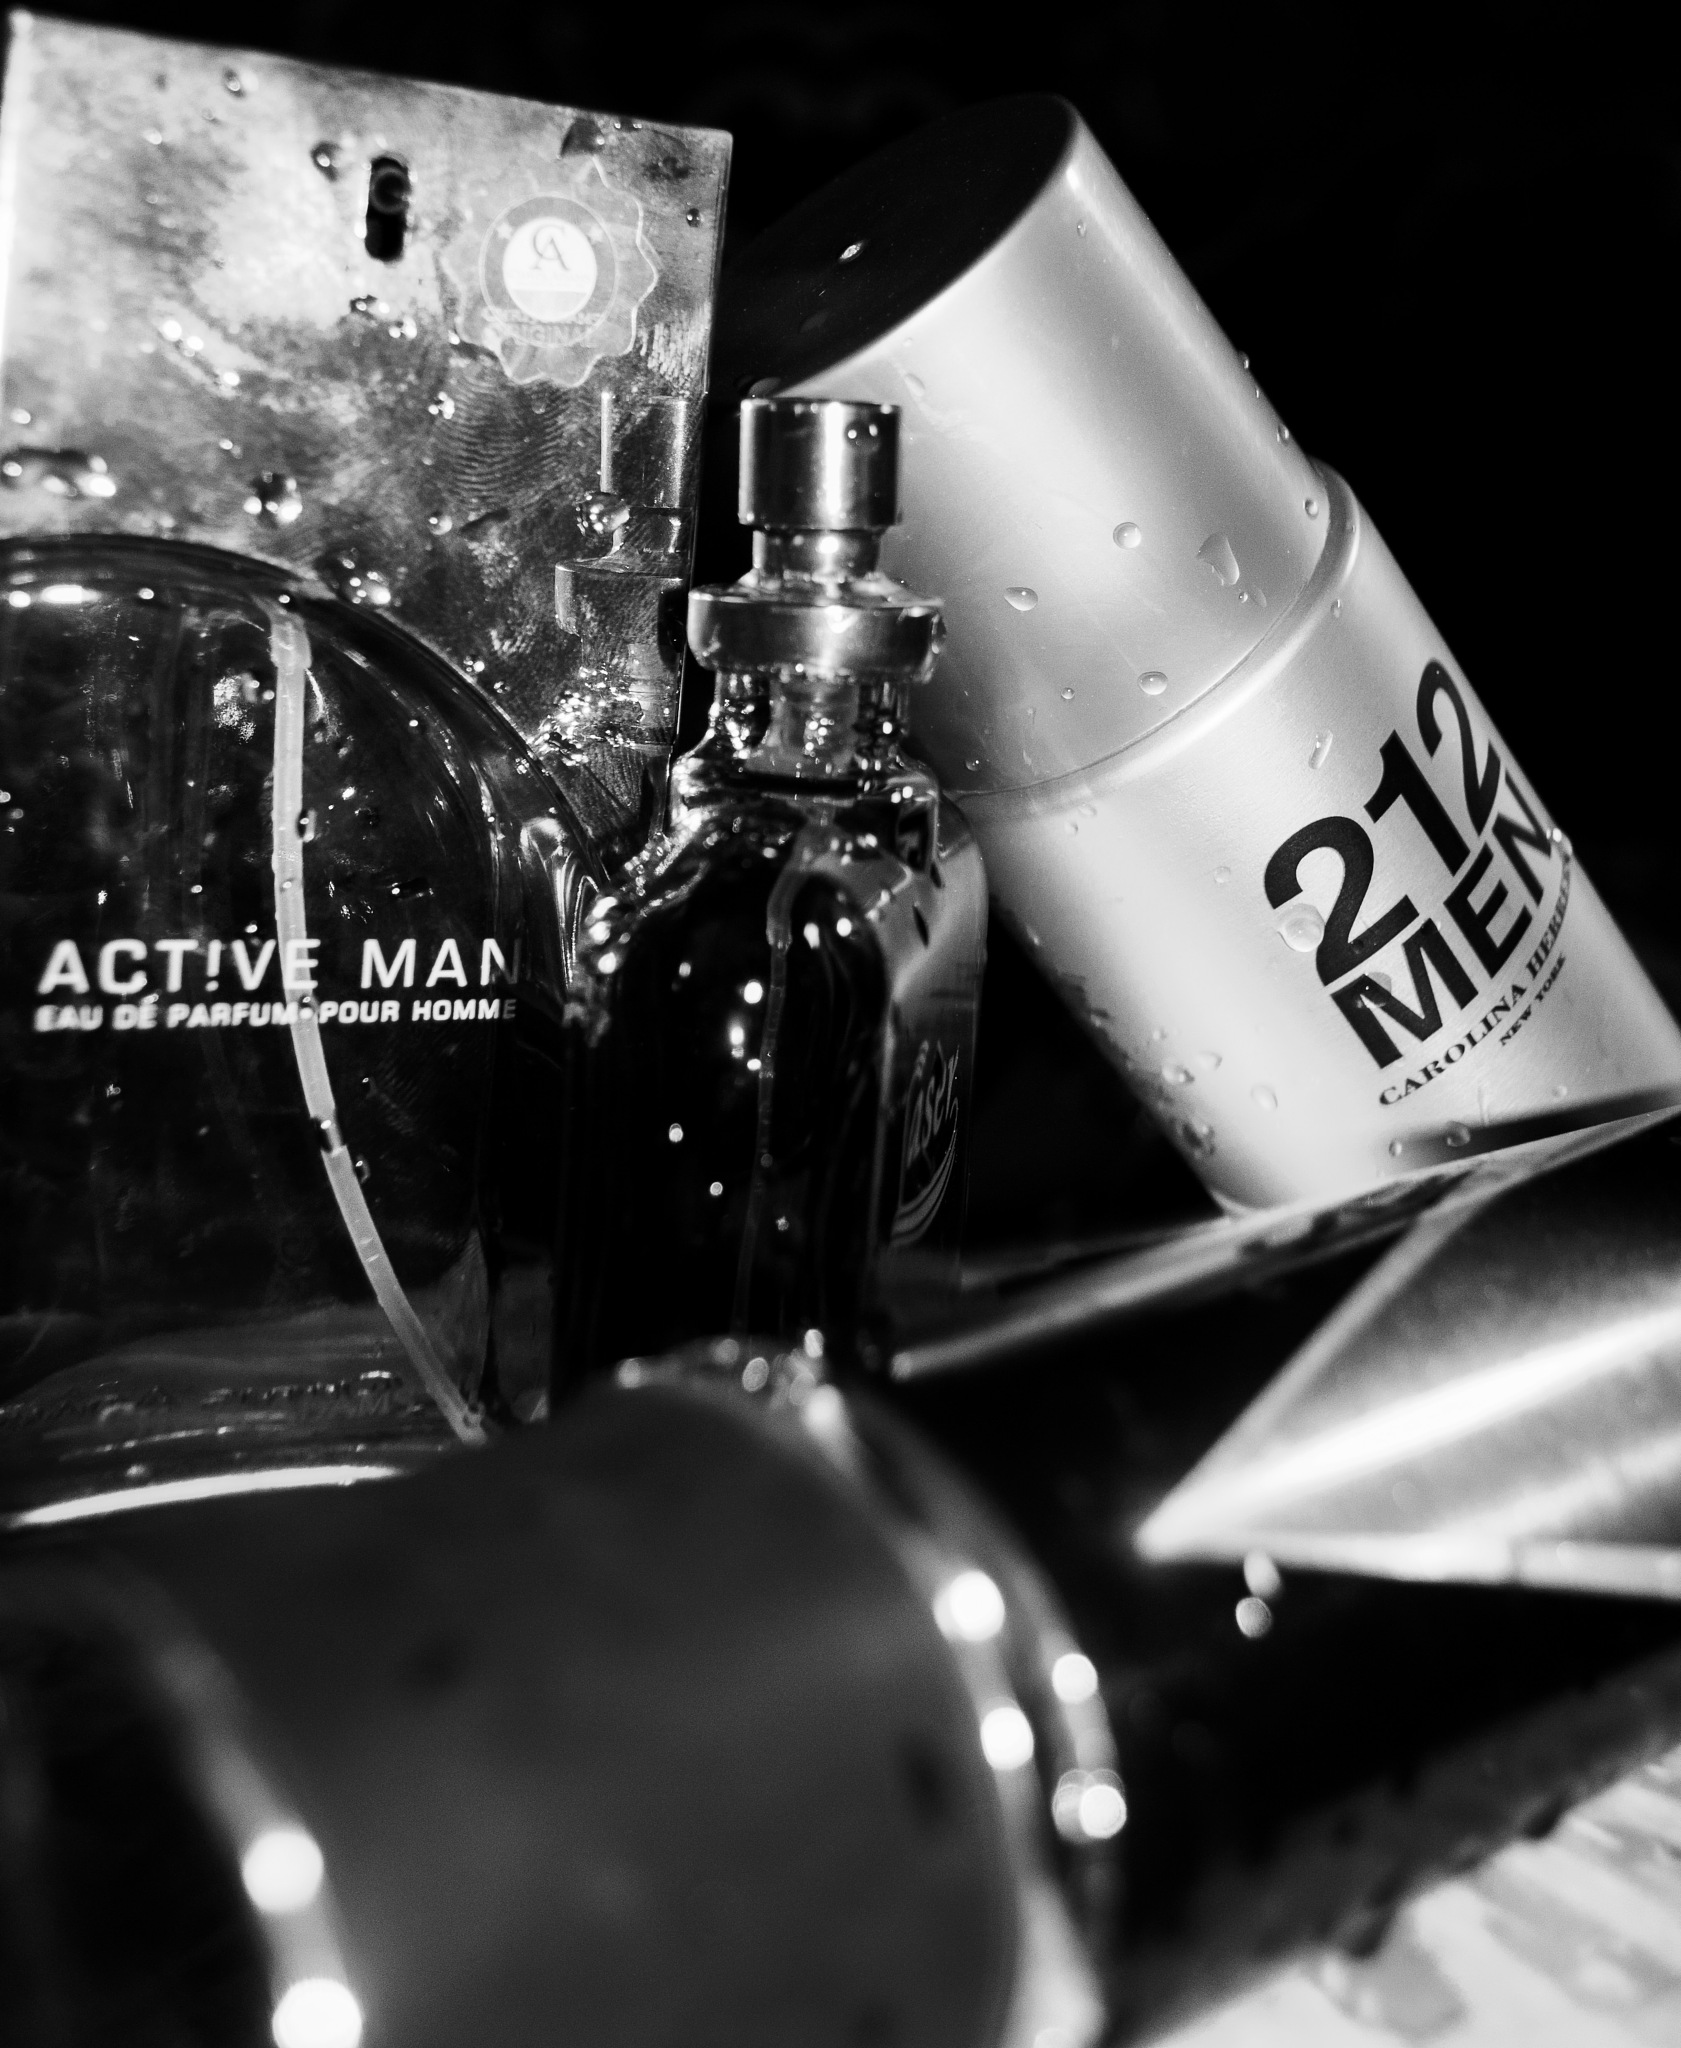 Ads for 212 perfume 5 by MustafaMansour